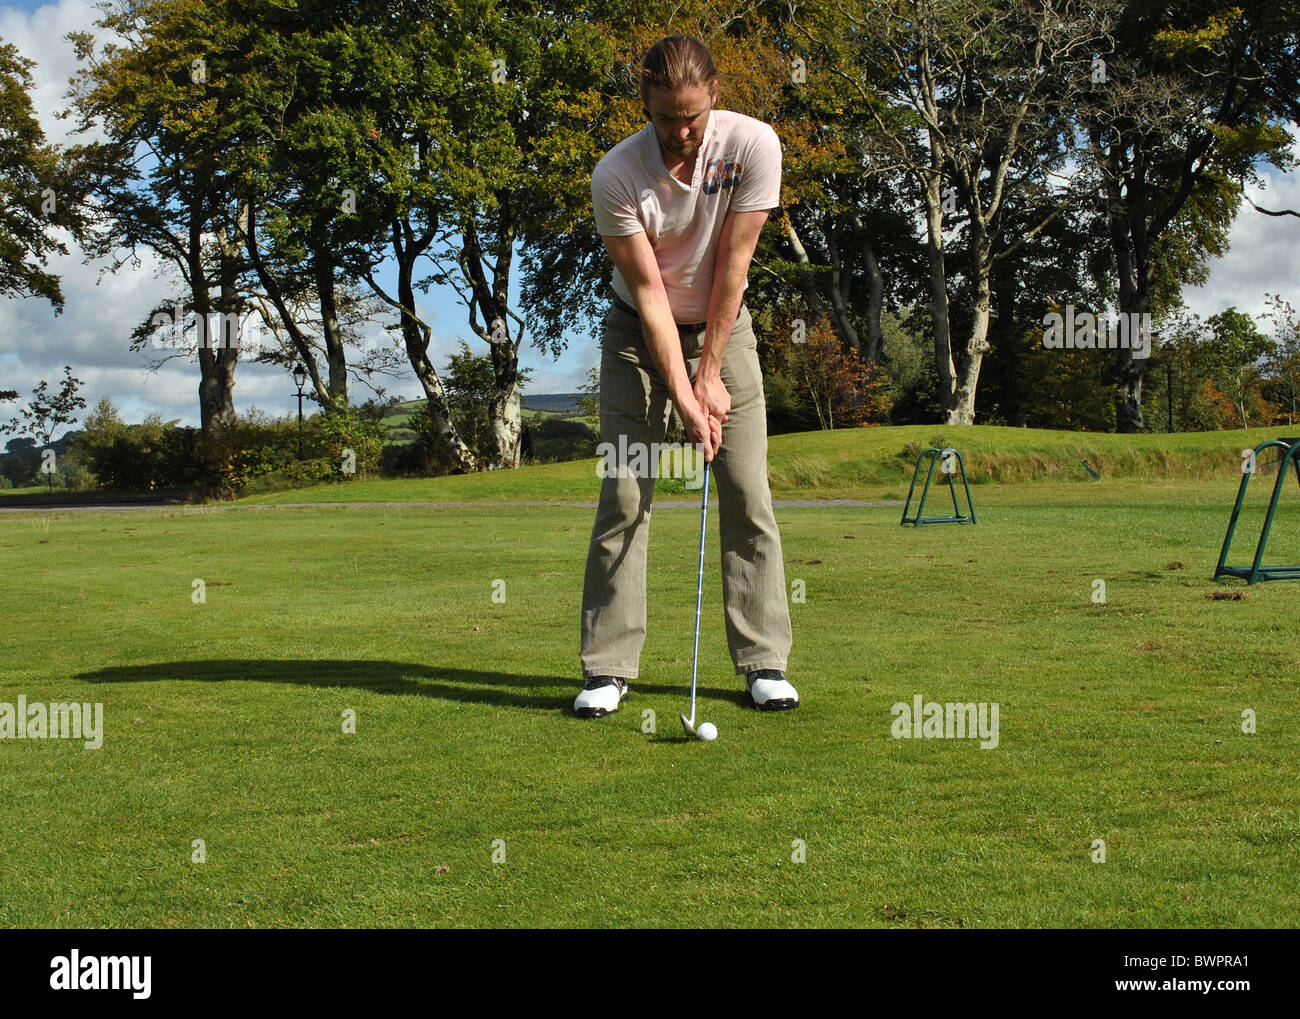 practicing in a driving range - Stock Image